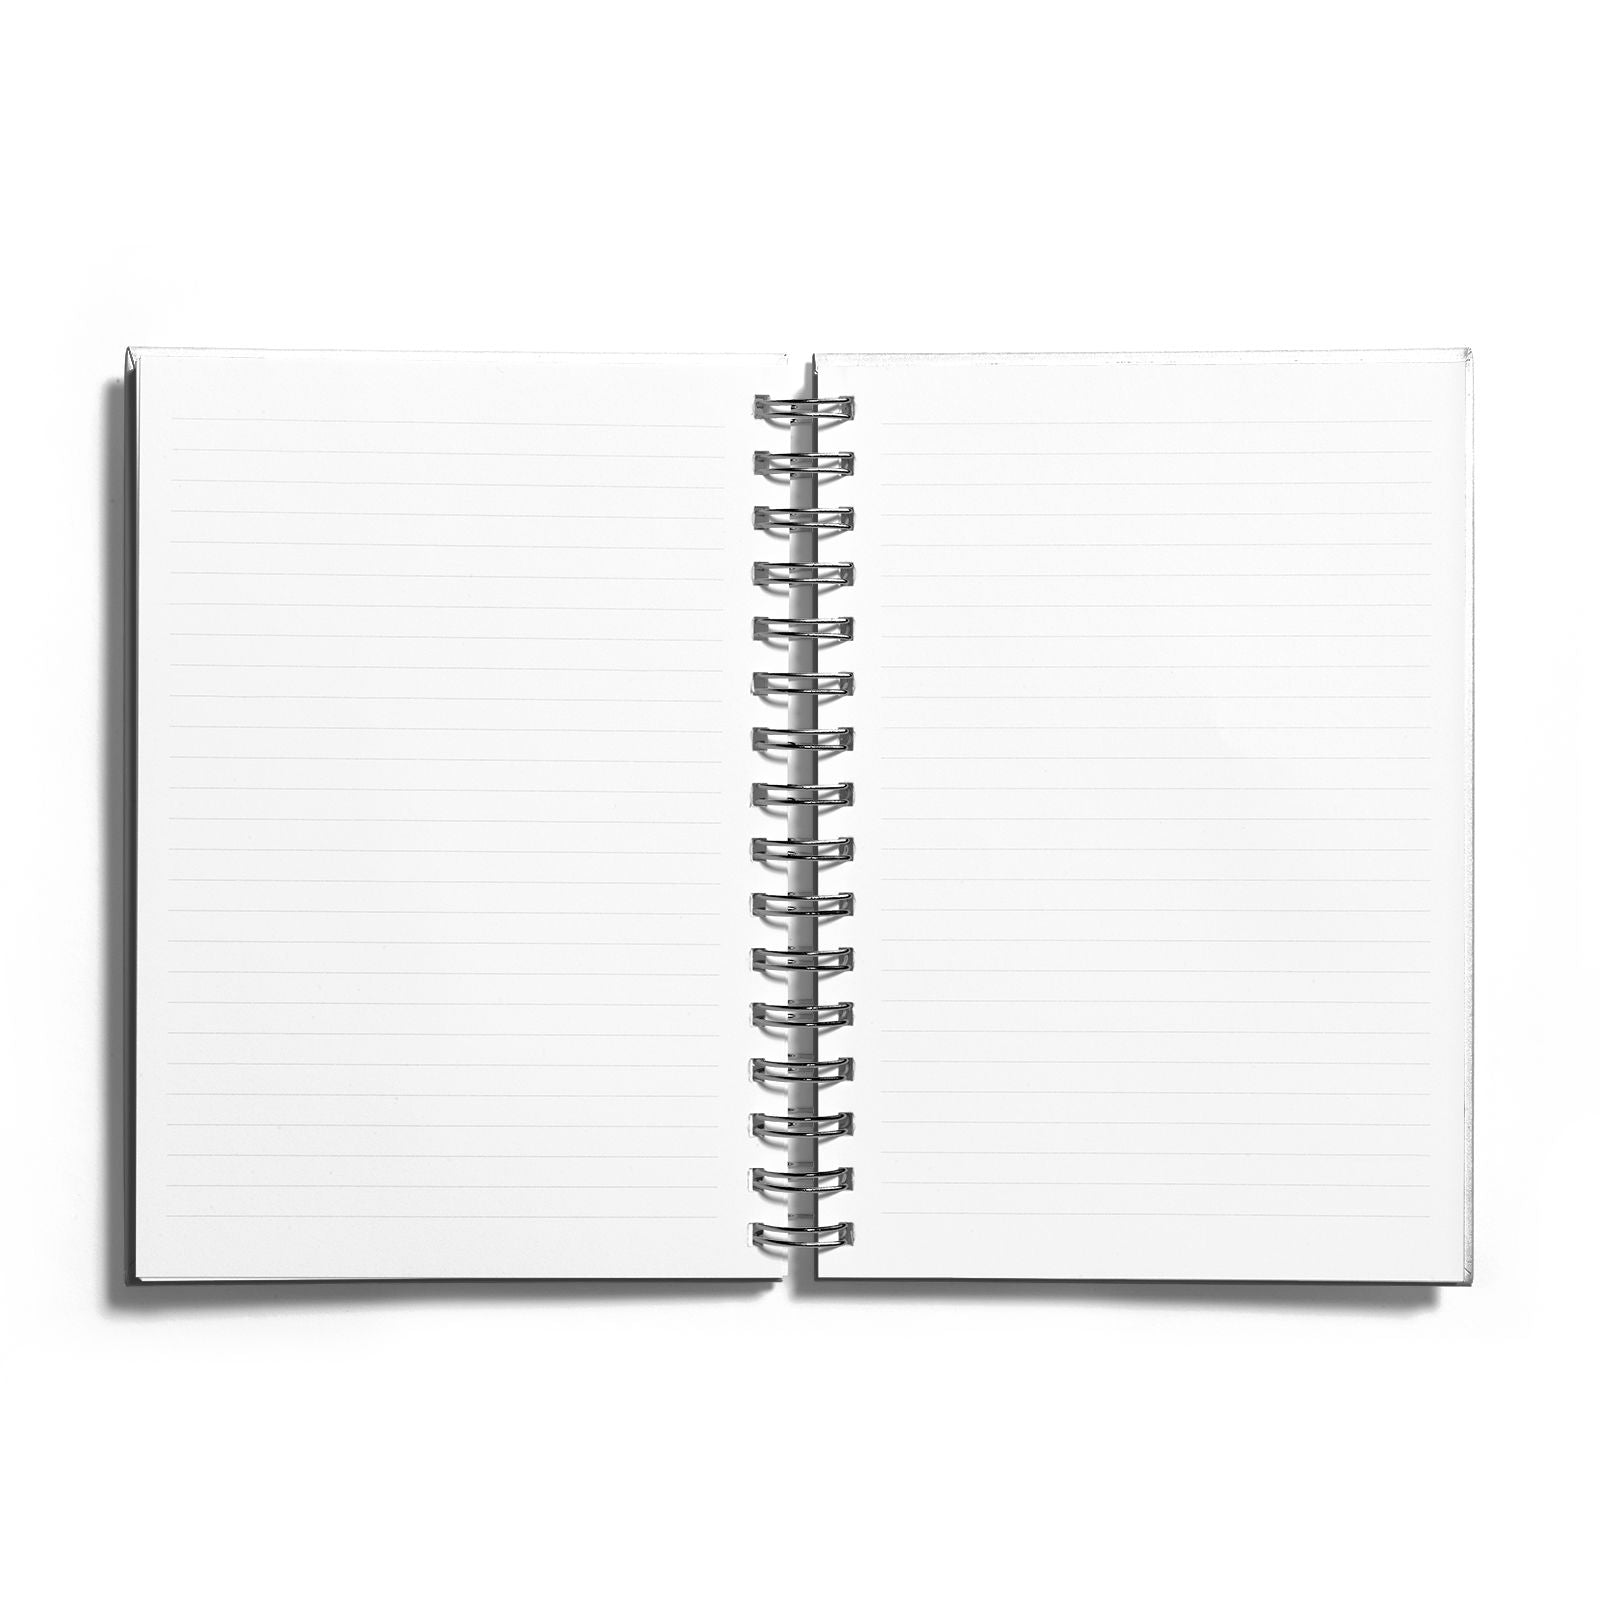 Kisses Under The Mistletoe Notebook with Silver Coil and Lined Paper